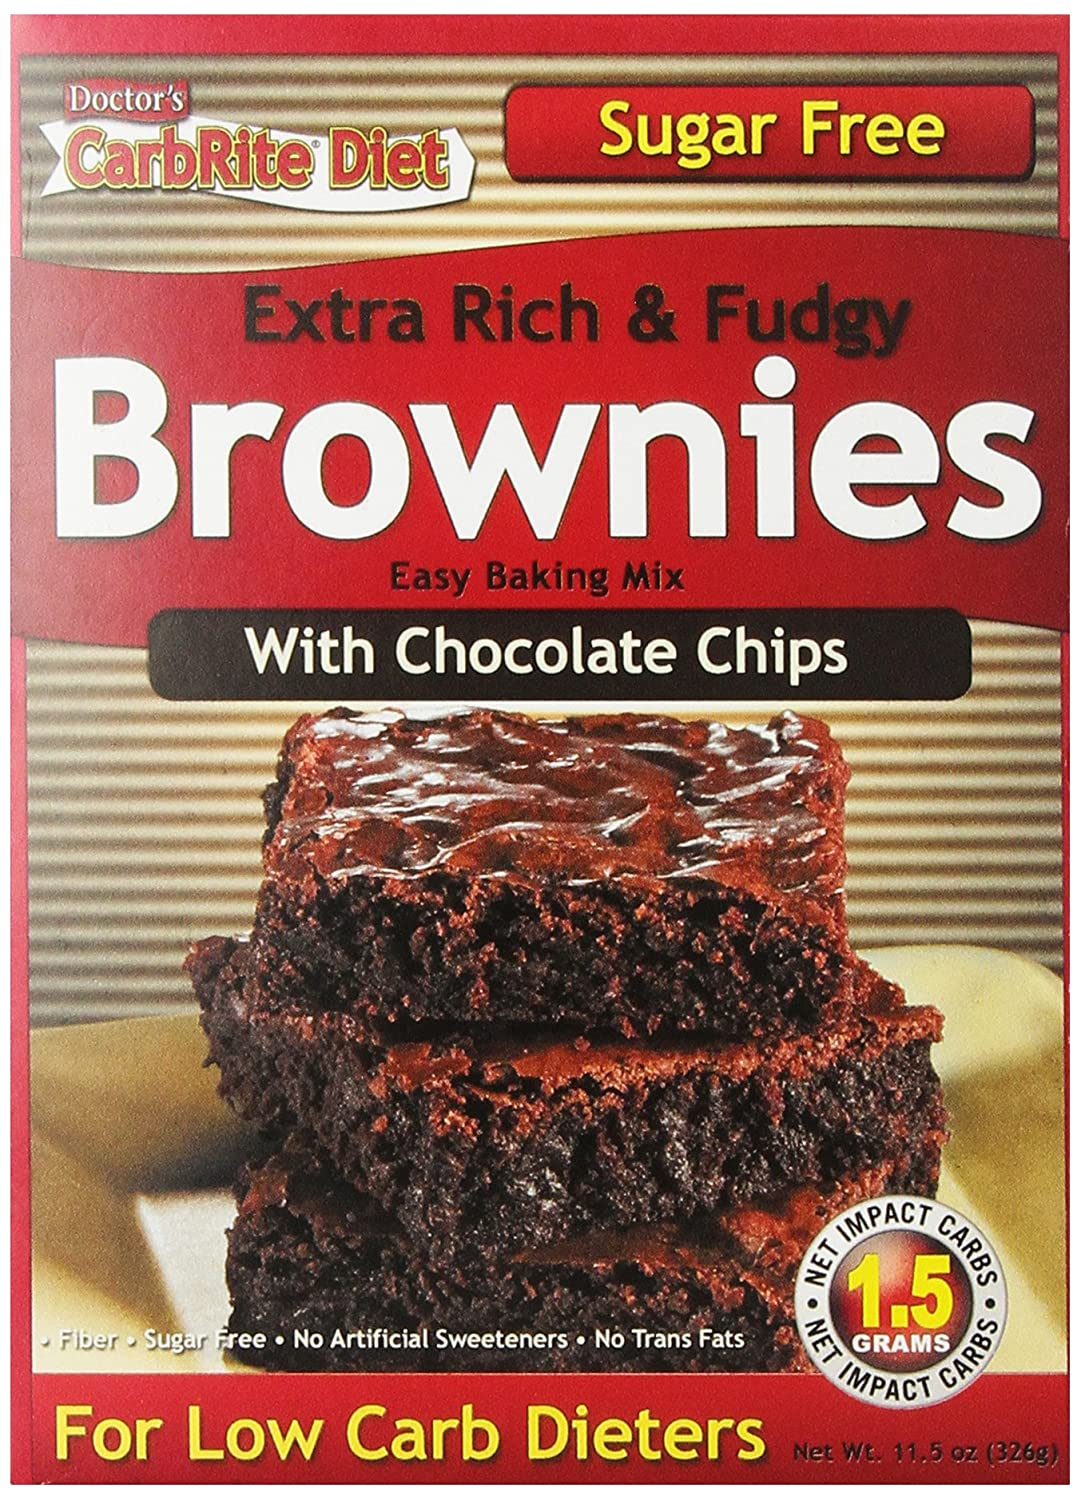 Amazon.com: Doctor's CarbRite Diet - Chocolate Chip Brownie Mix ...